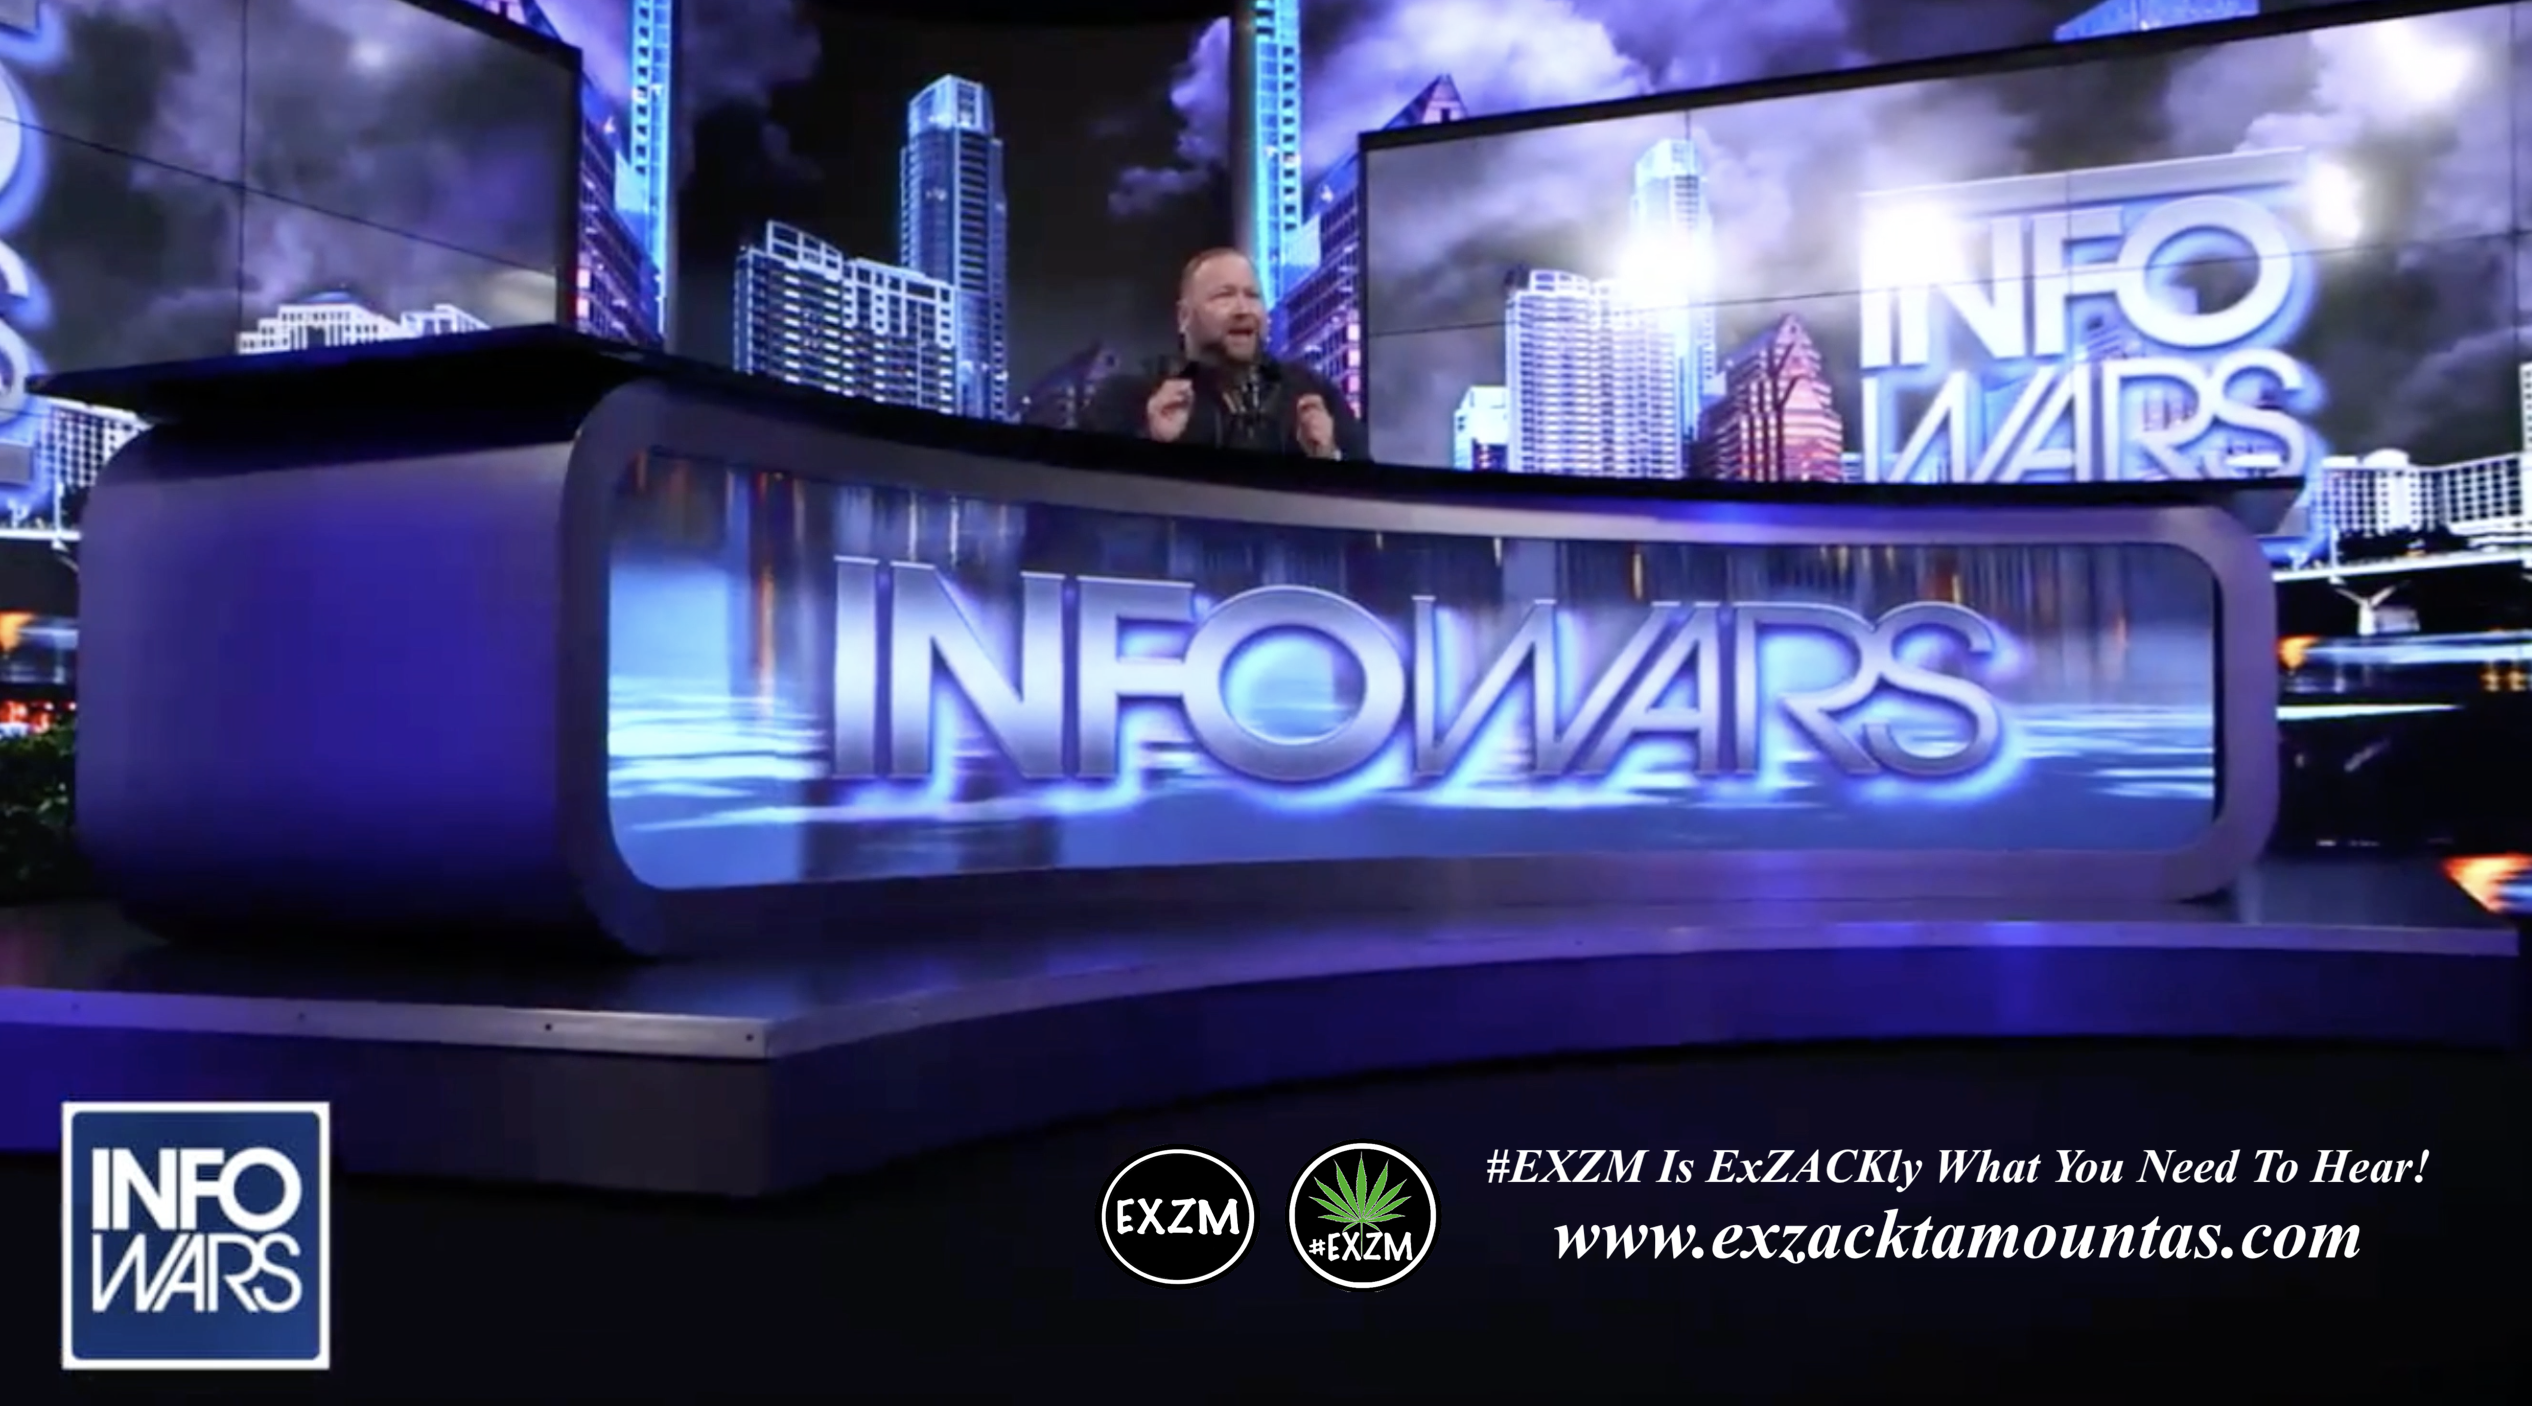 Alex Jones Live Infowars Studio EXZM Zack Mount April 12th 2021 copy